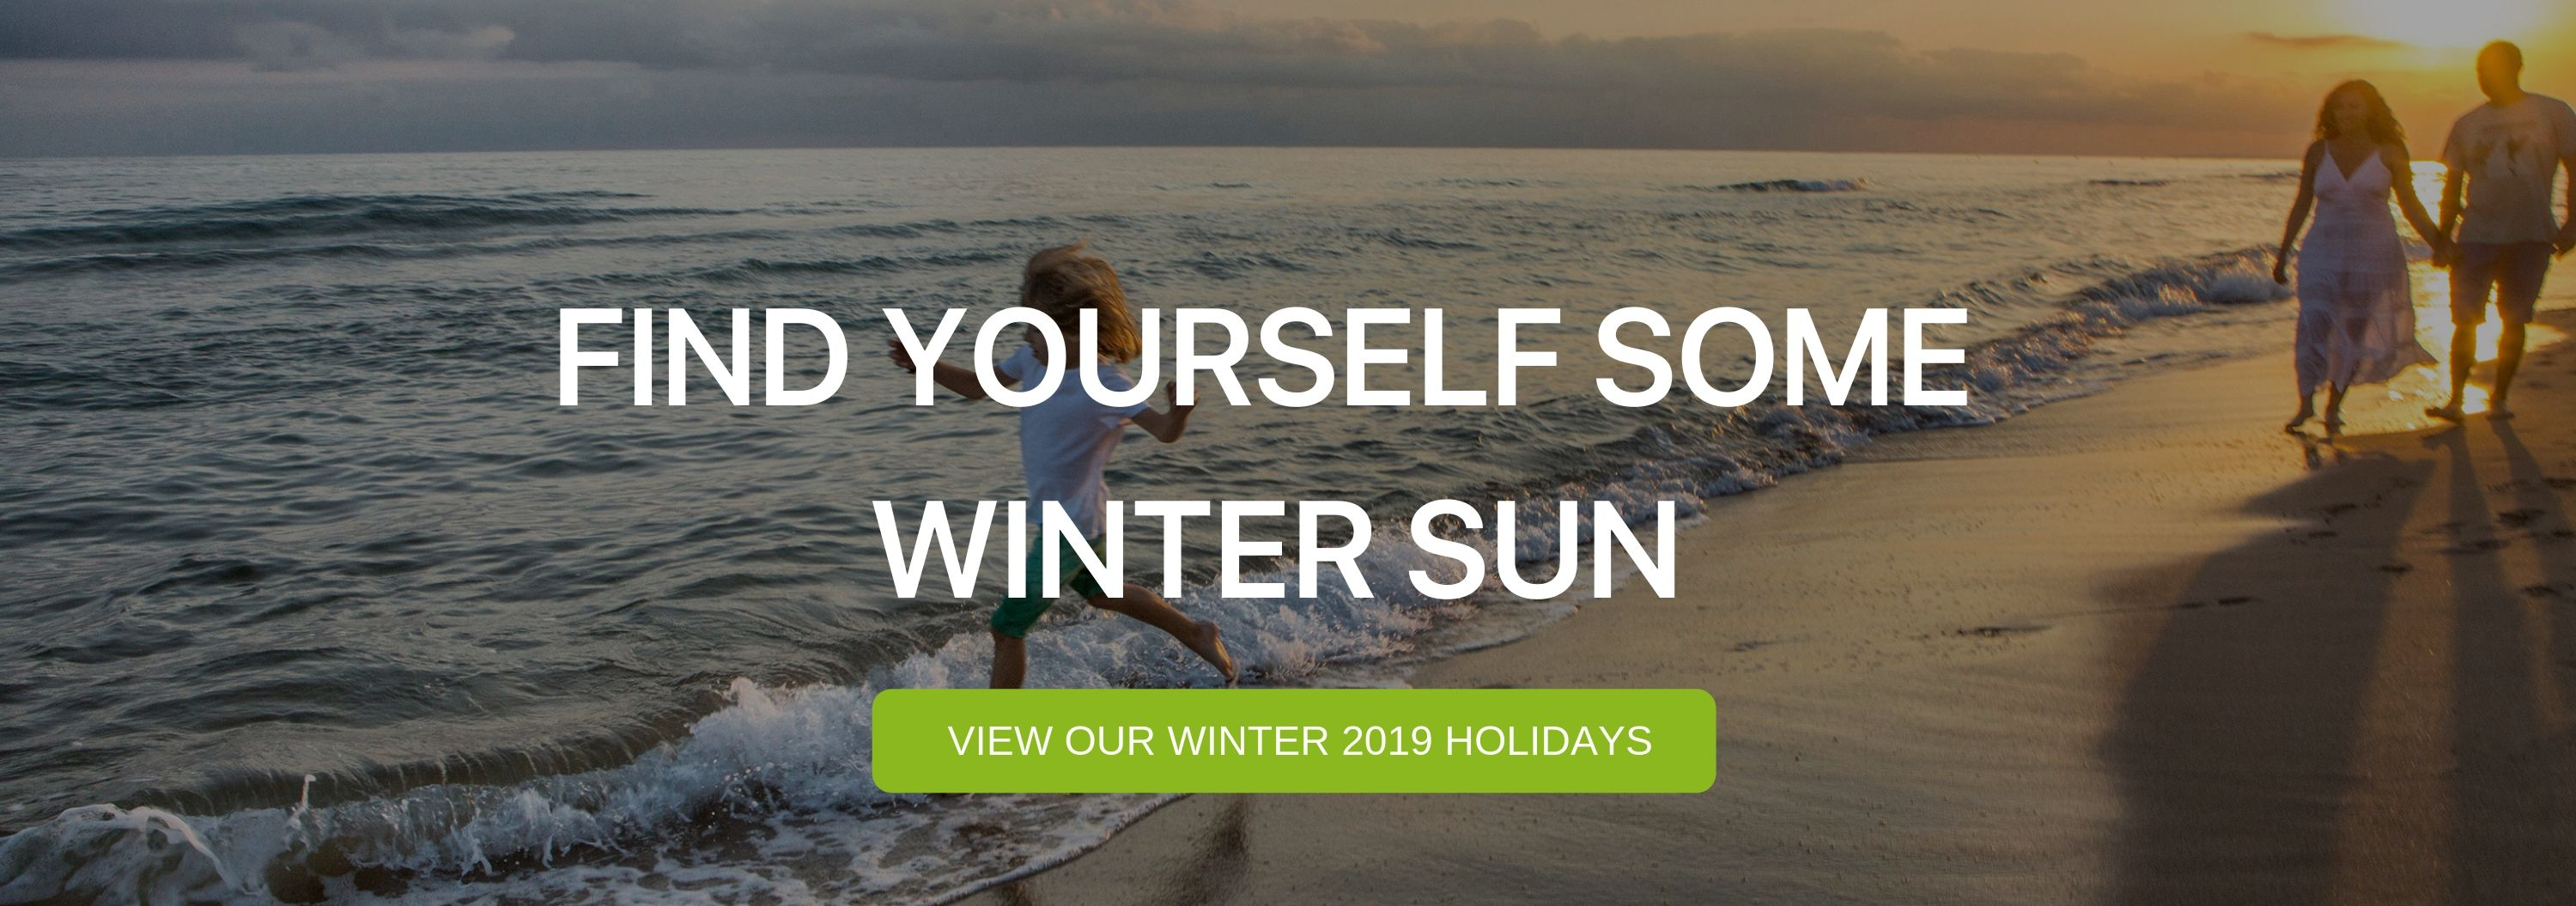 "A banner that says ""Find yourself some winter sun"""